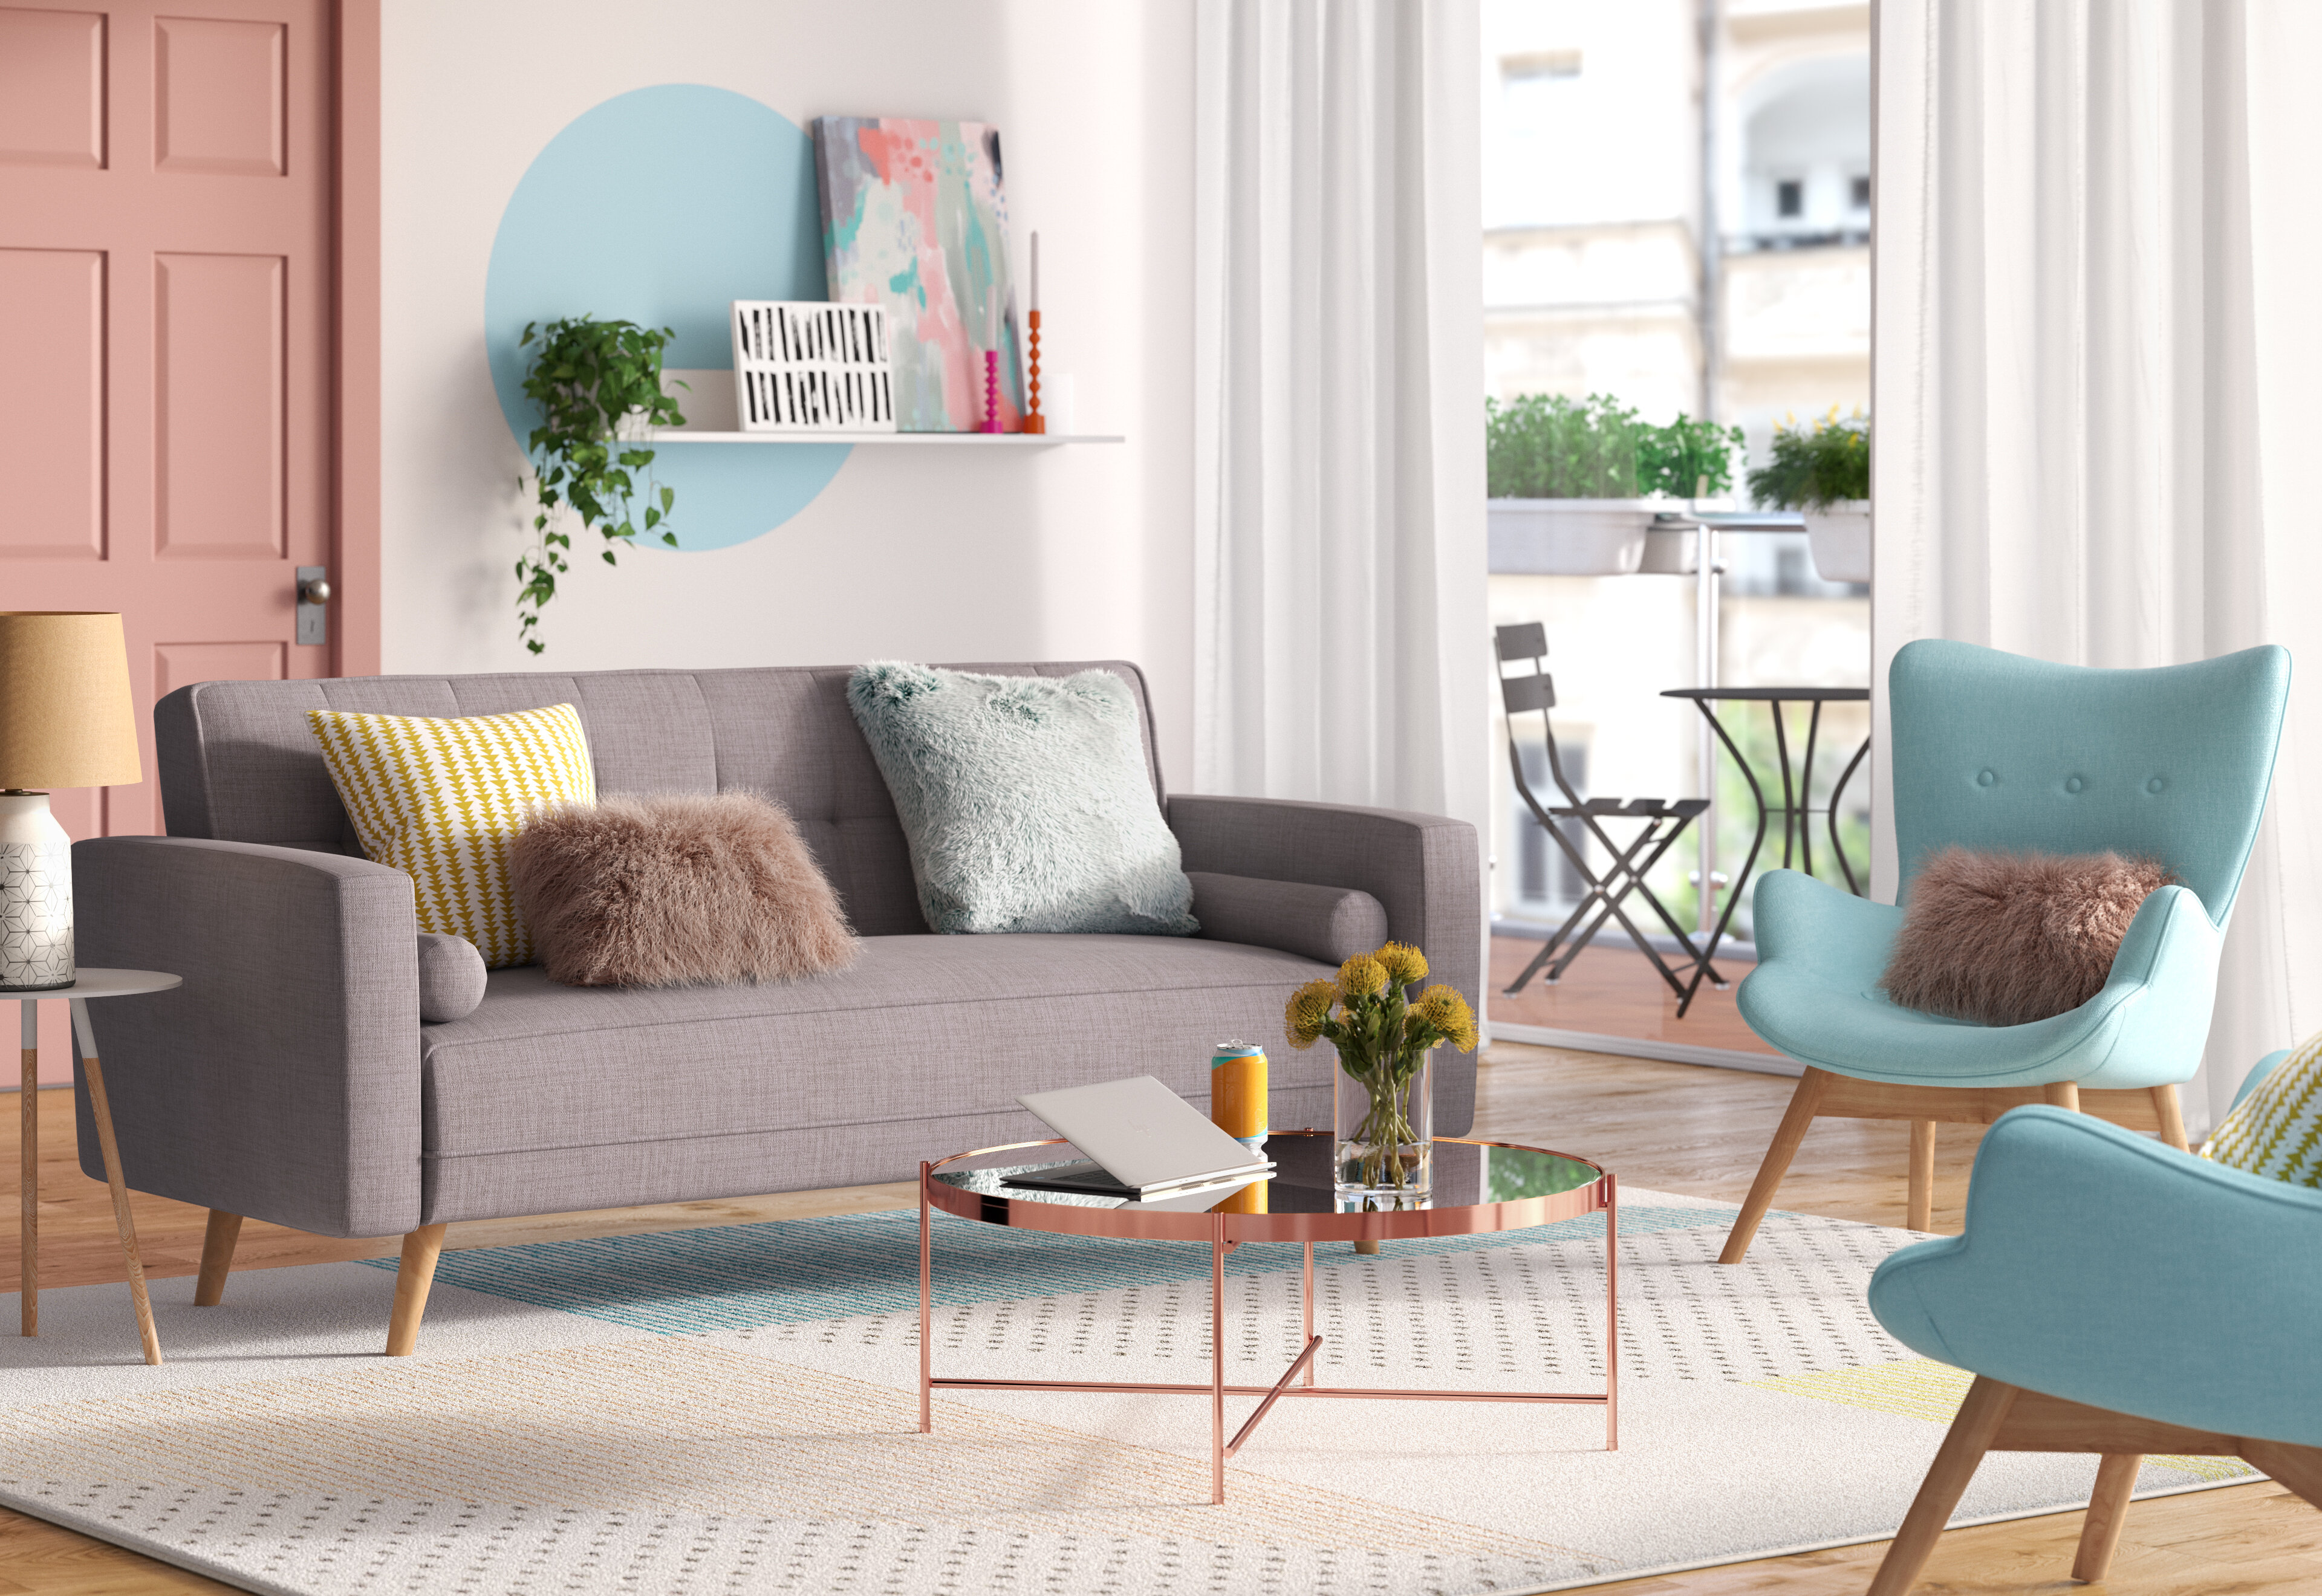 Update Your Space With These 13 Family Room Decorating Ideas Wayfair